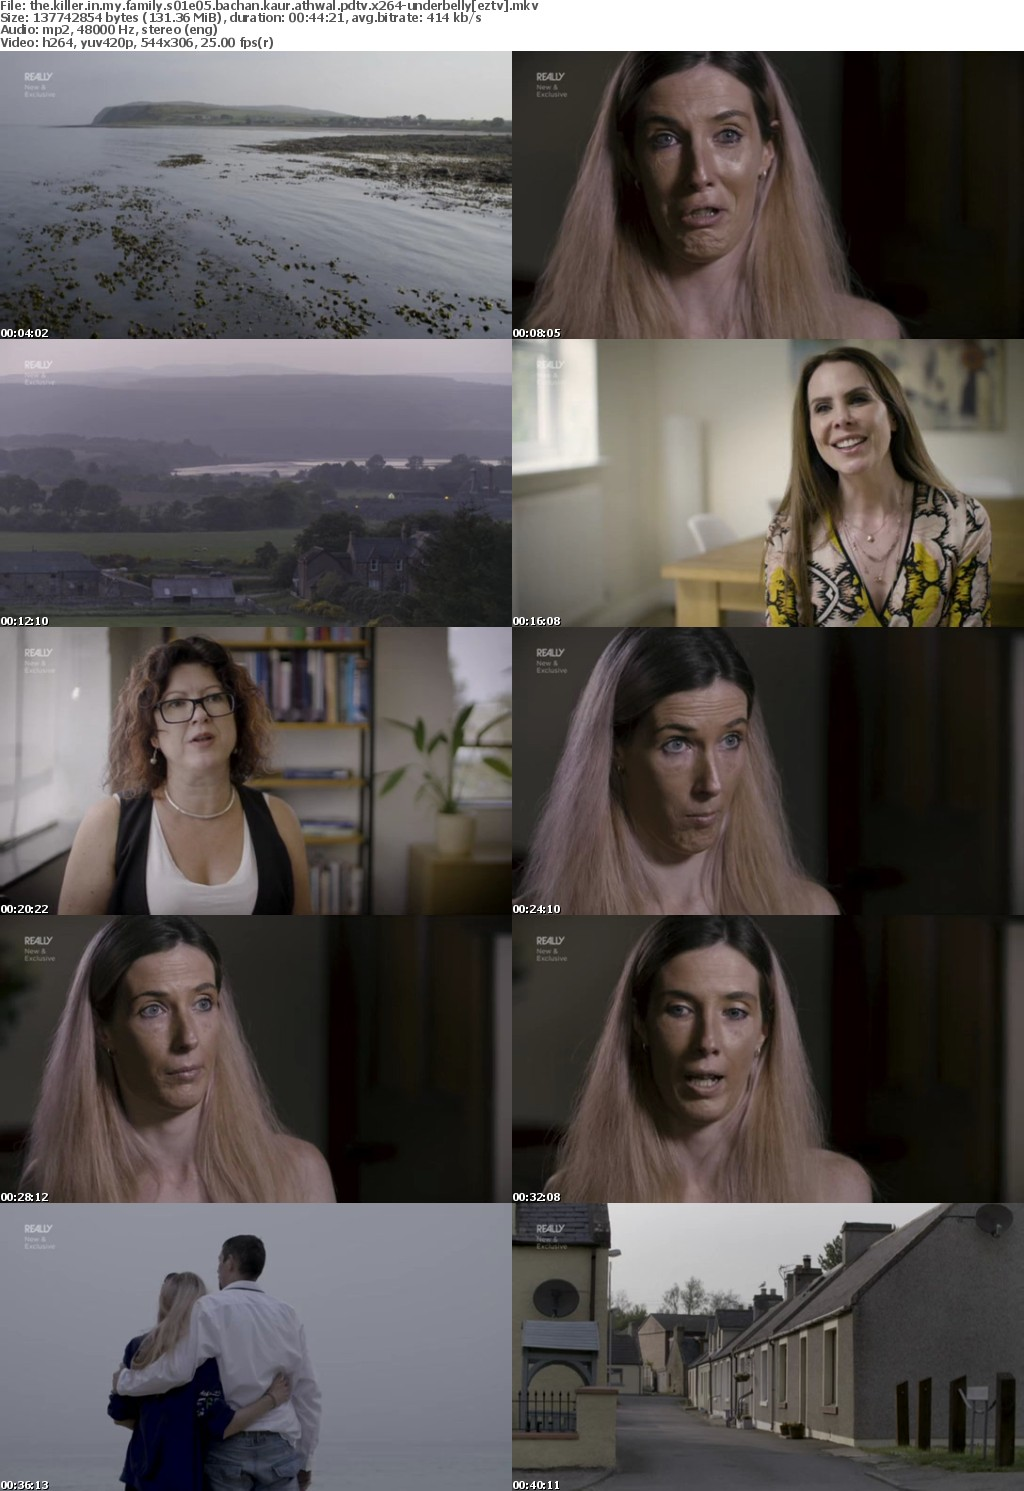 The Killer in My Family S01E05 Bachan Kaur Athwal PDTV x264-UNDERBELLY